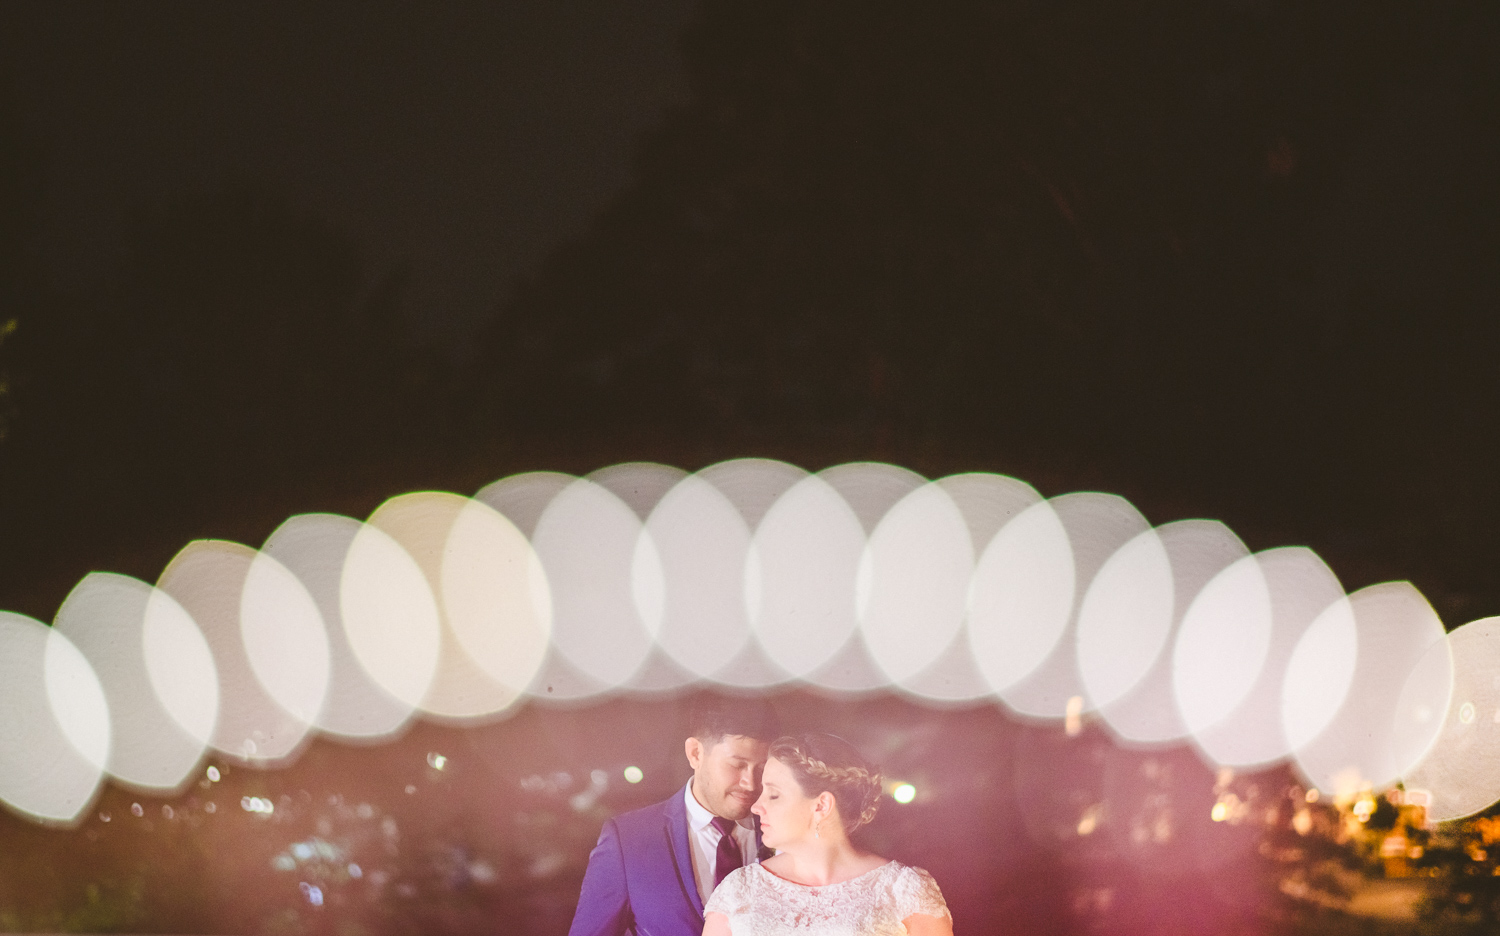 024 - beautiful night wedding portrait with out of focus lights washington dc wedding photographer.jpg